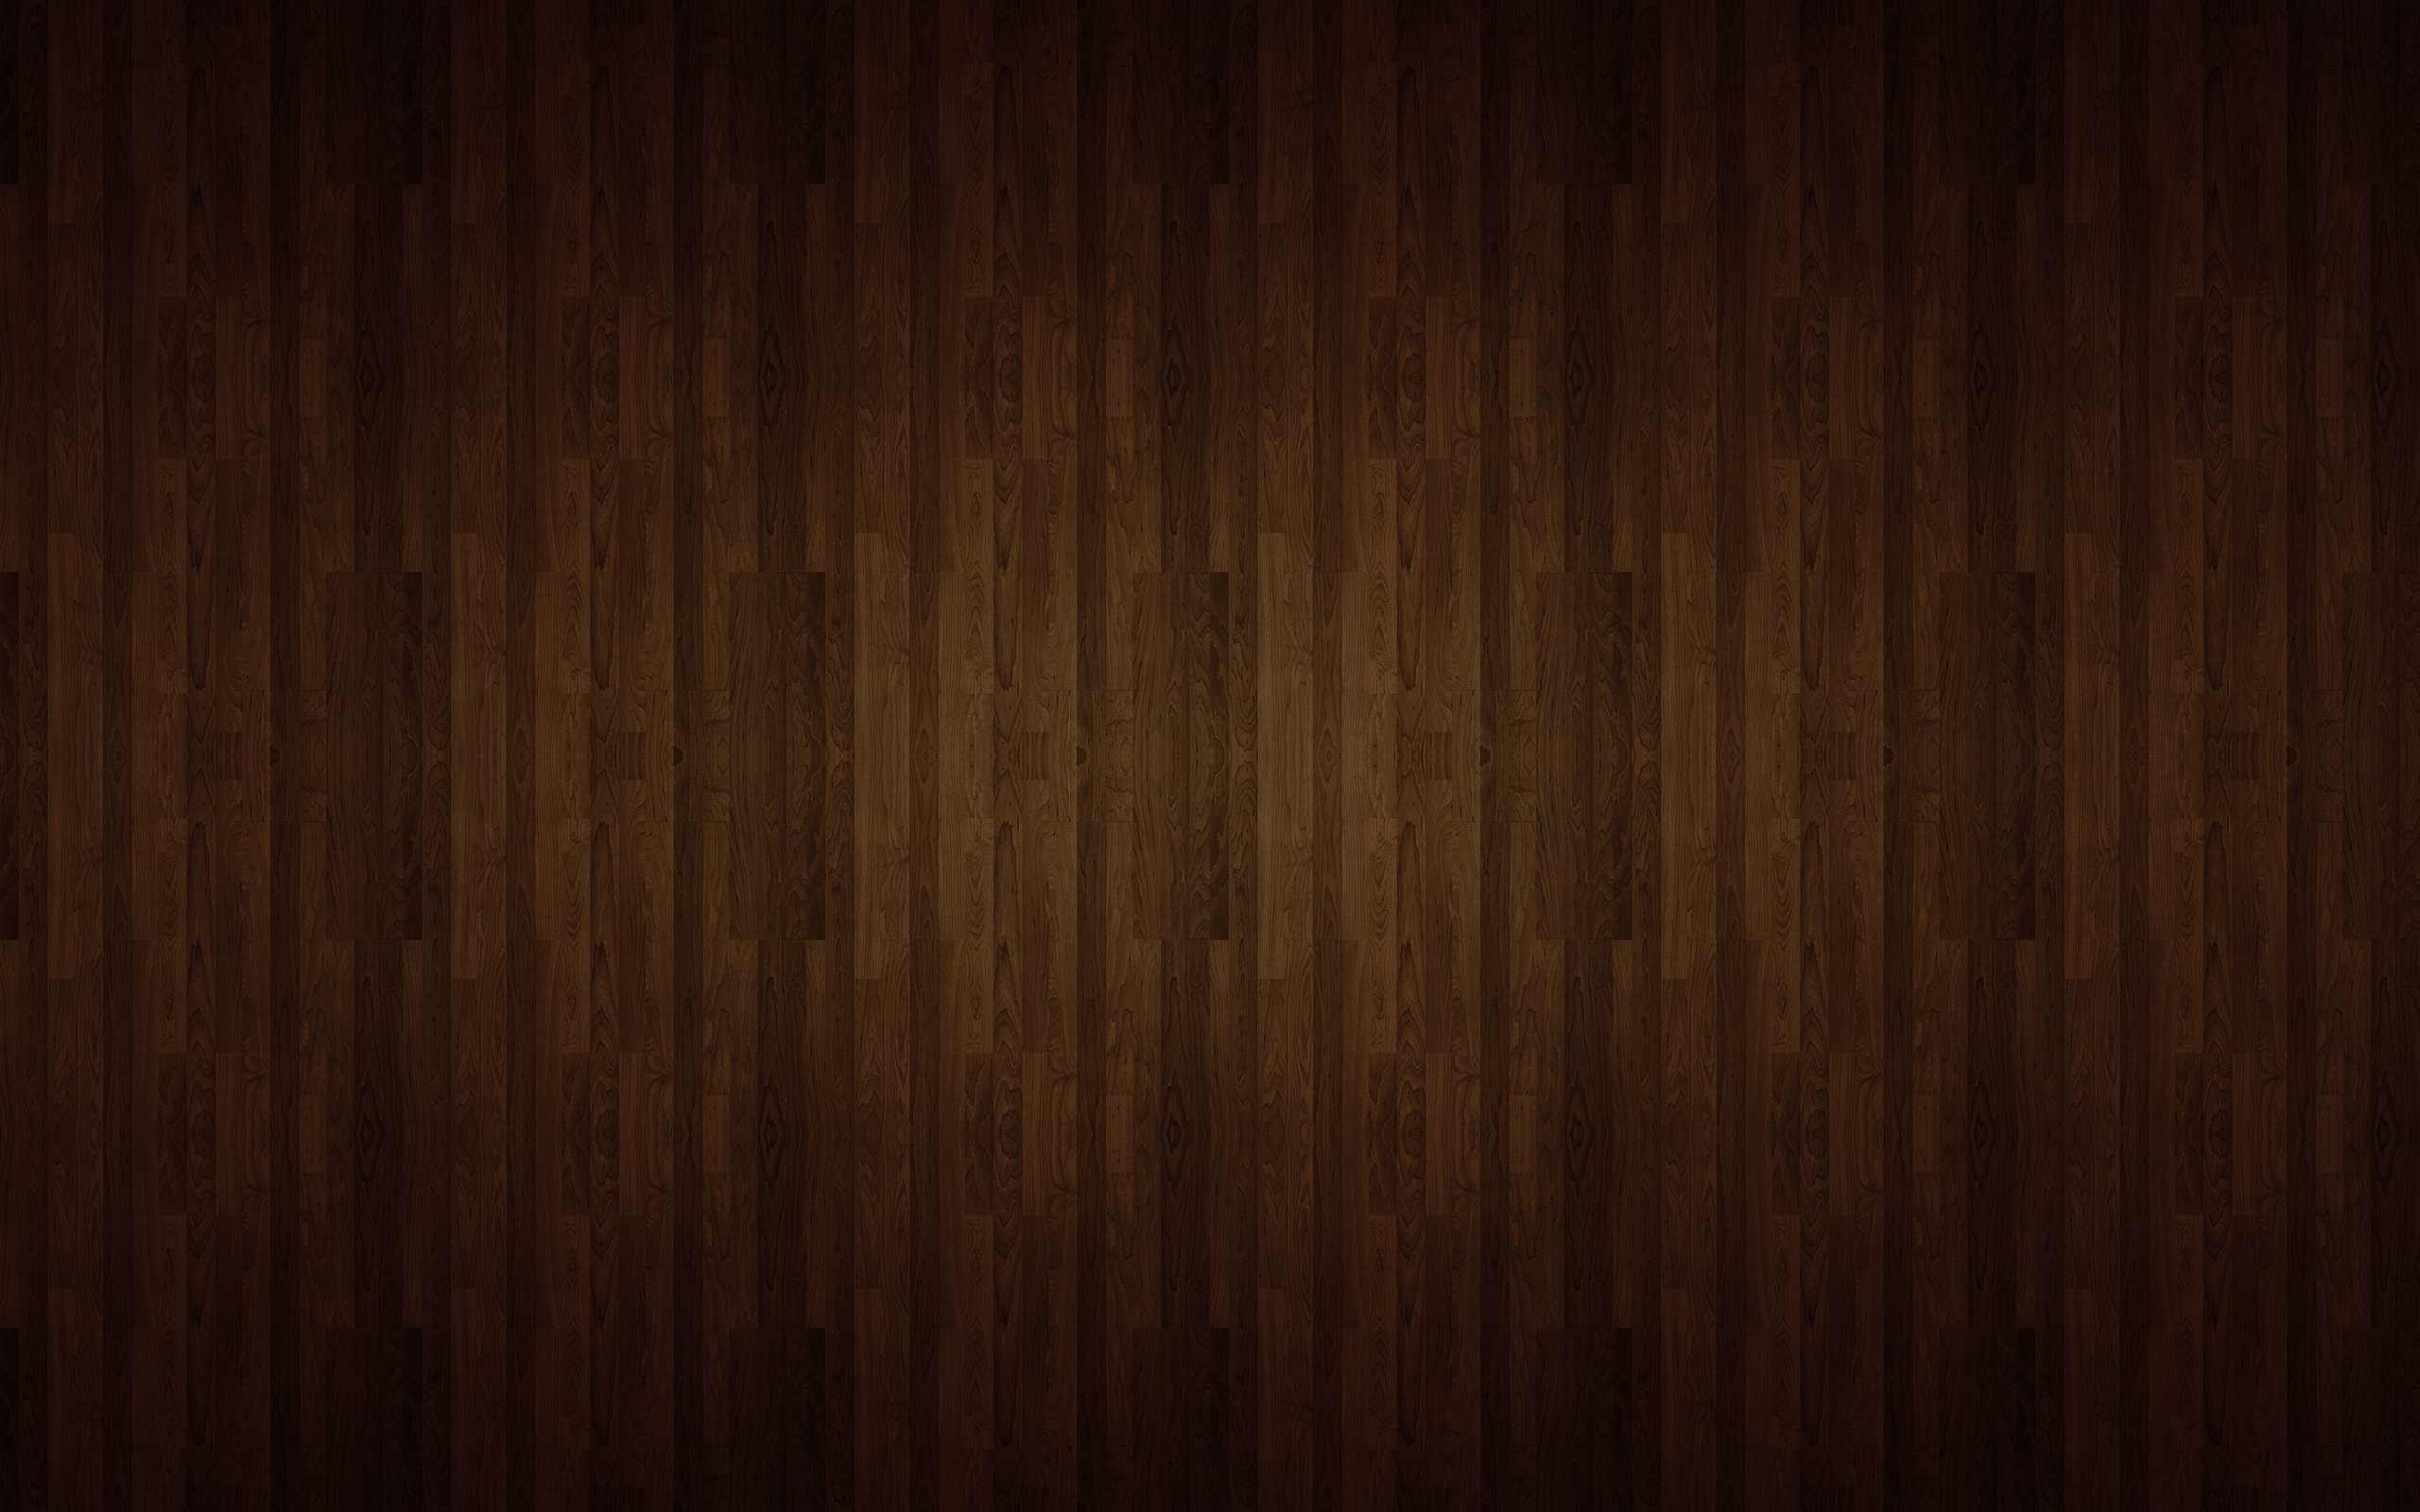 183 wood hd wallpapers background images wallpaper abyss hd wallpaper background image id81670 voltagebd Choice Image